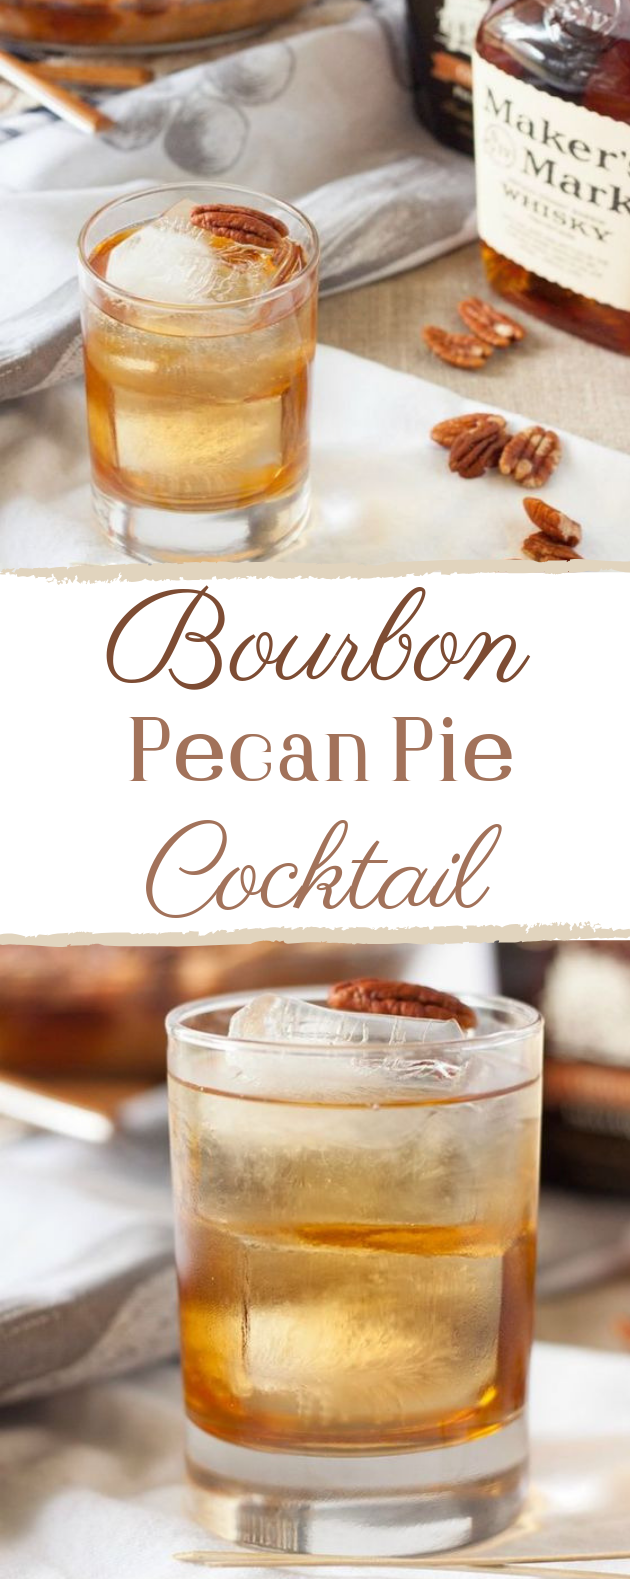 Bourbon Pecan Pie Cocktail #cocktail #drinks